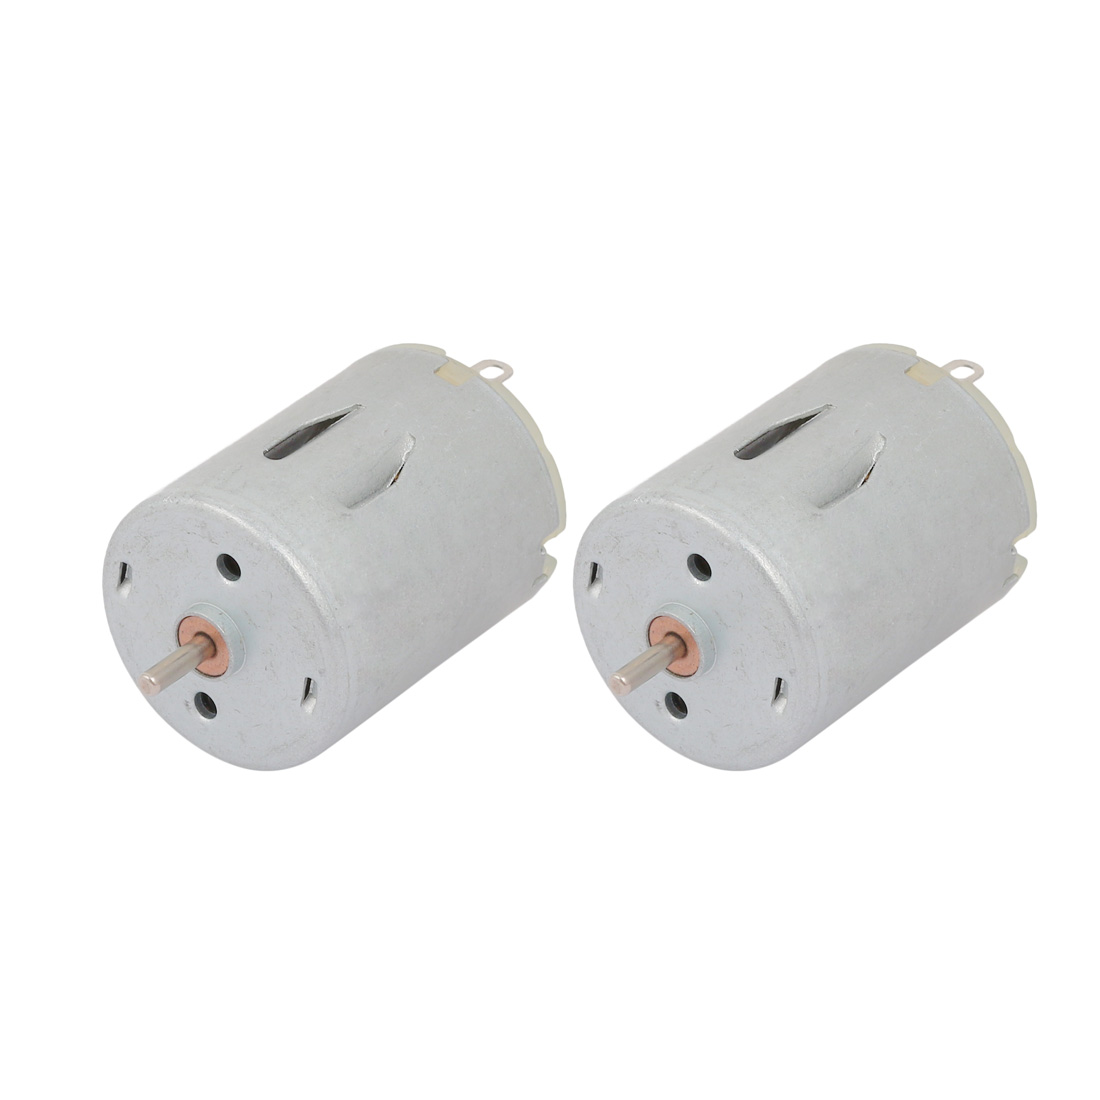 2pcs DC12V 22000RPM Strong Magnetic Brushed Micro DC Motor R280 for RC Model